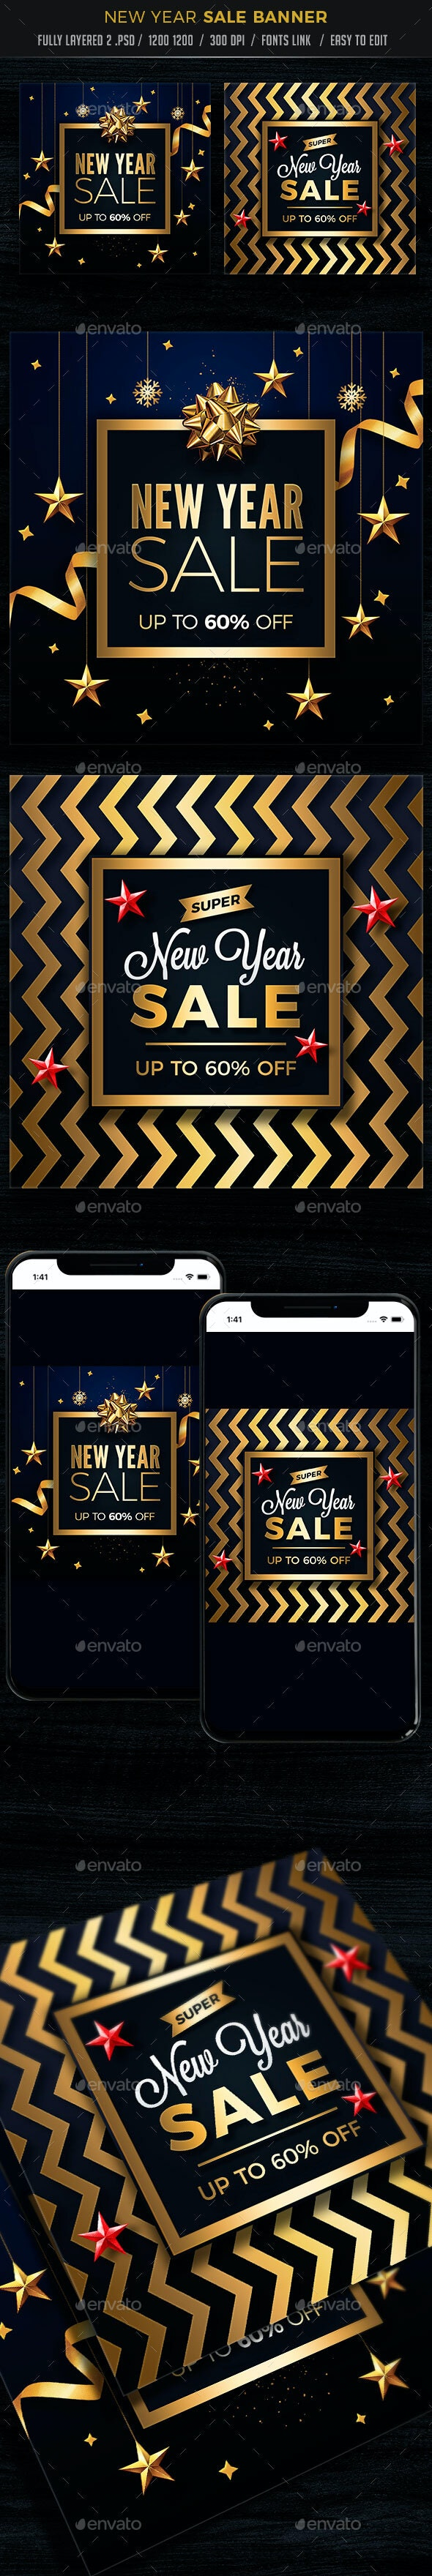 New Year Banners - Banners & Ads Web Elements